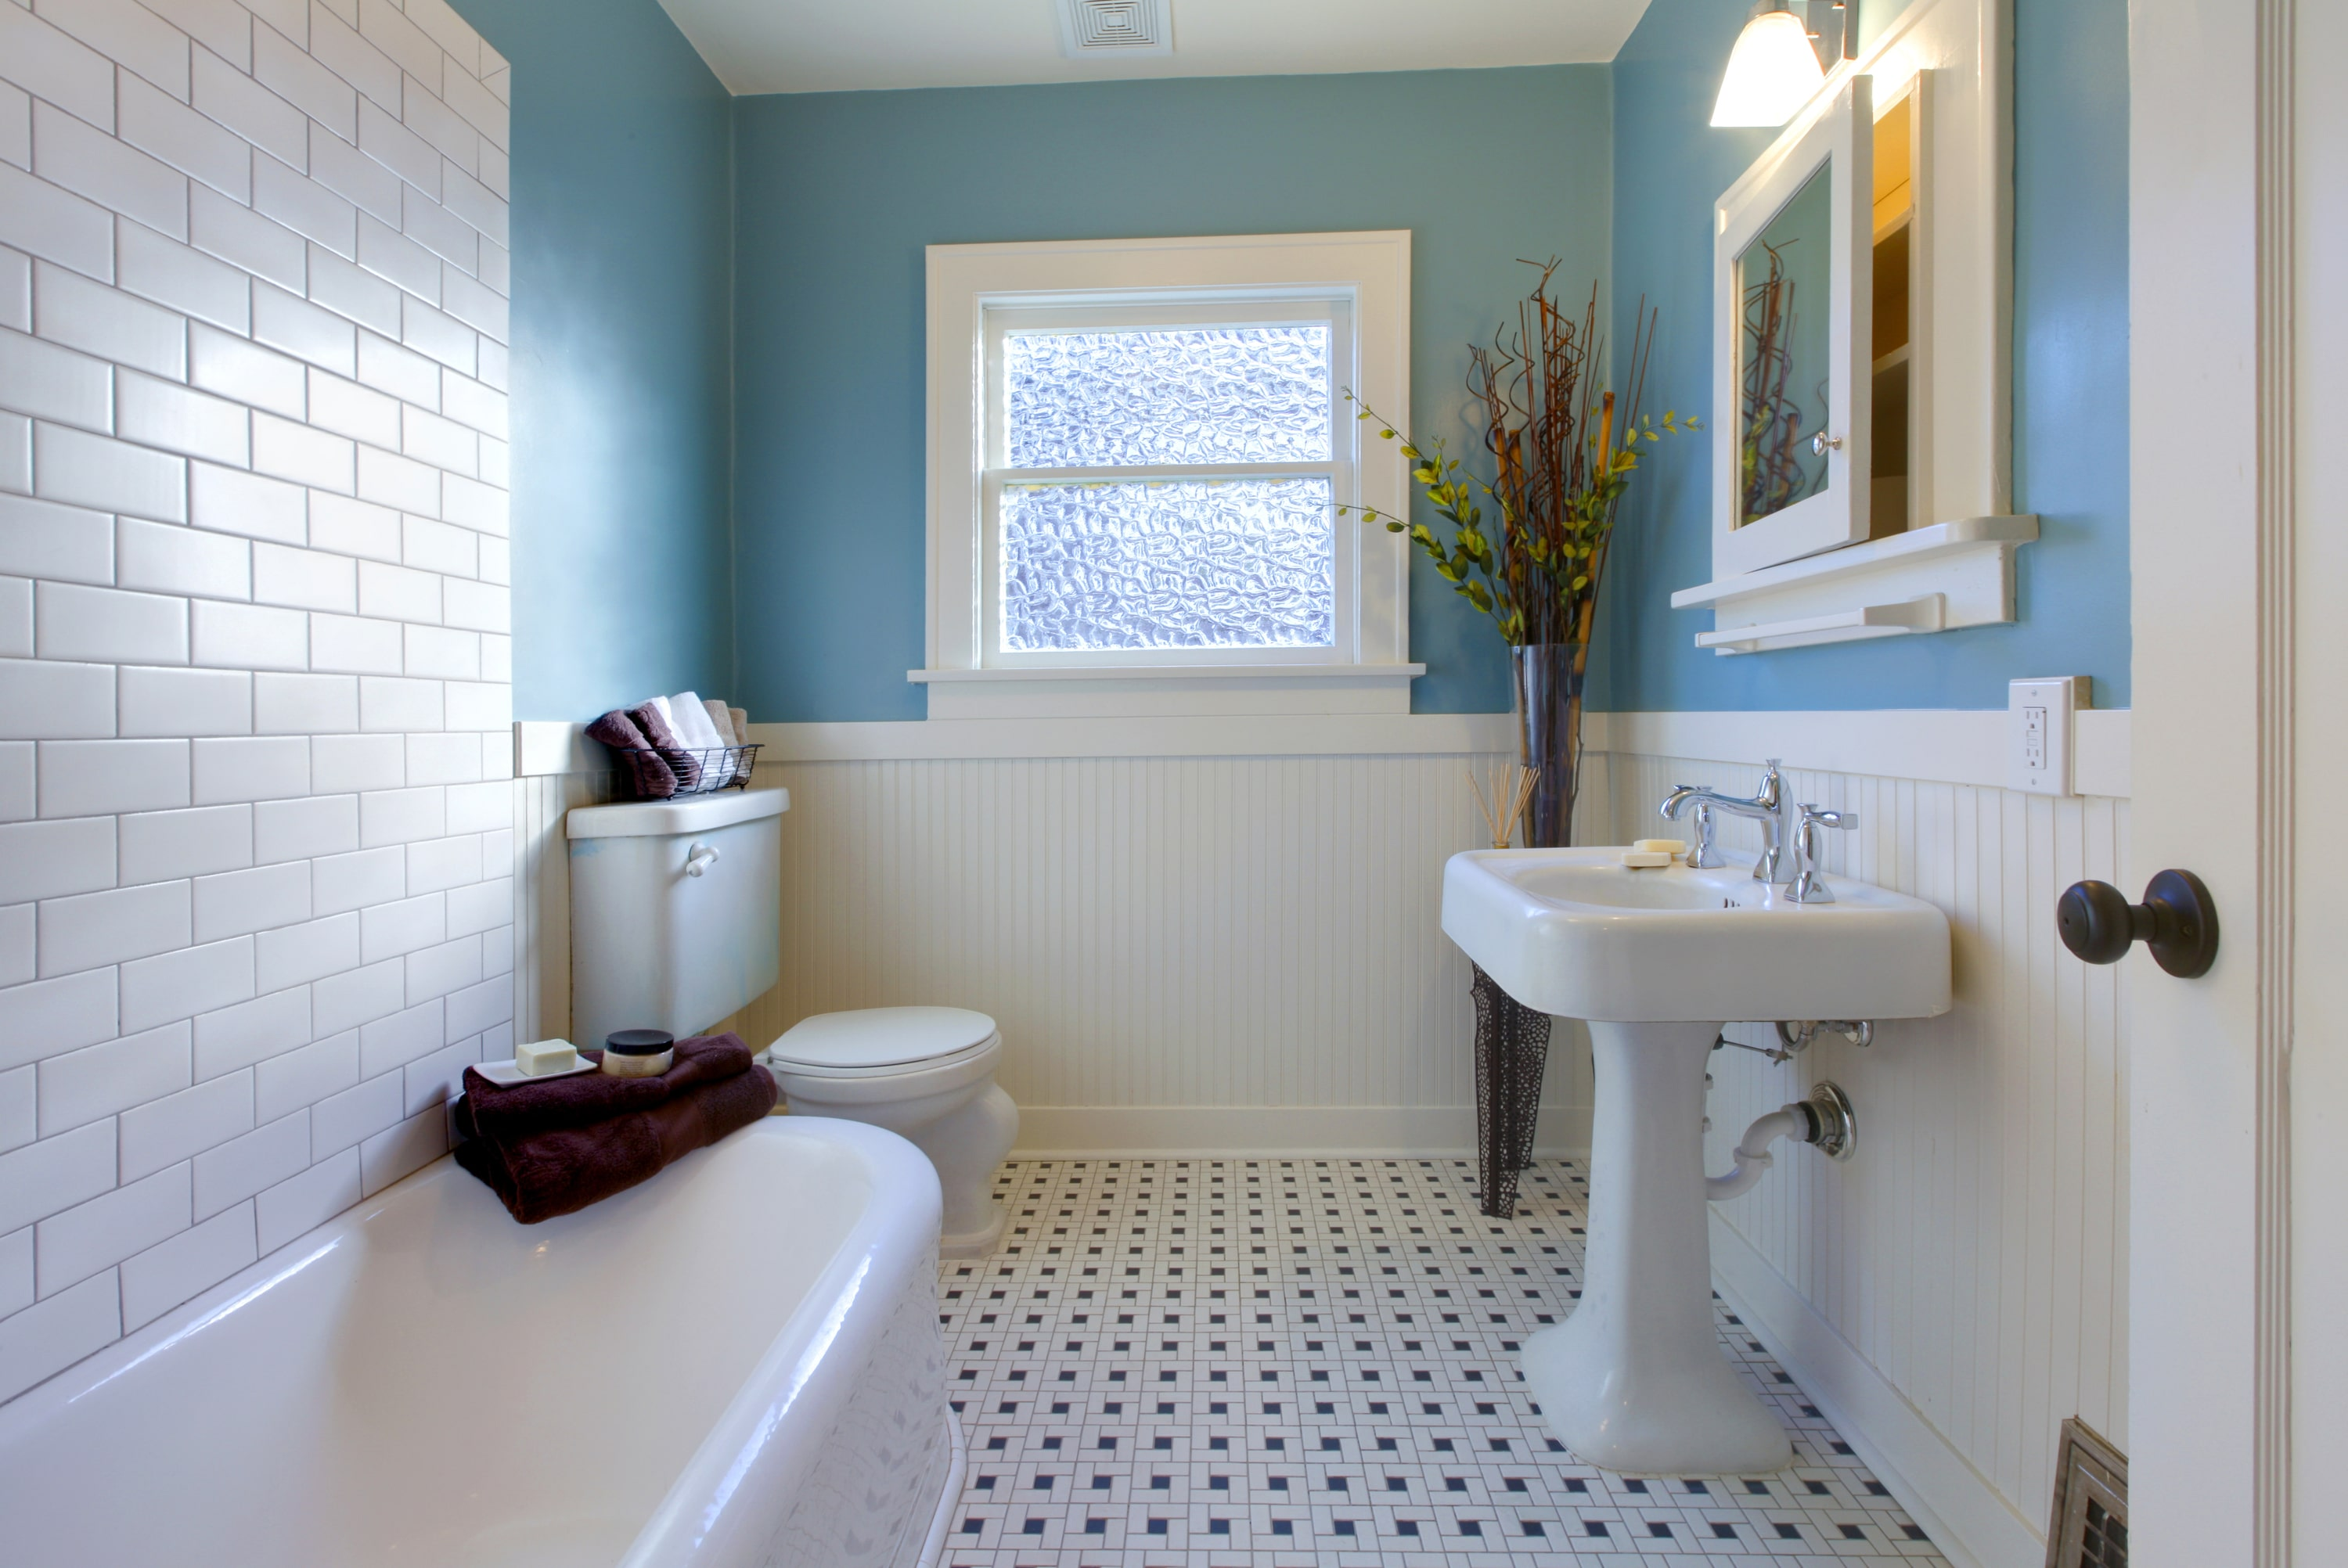 ideas for bathroom remodel 8 bathroom design remodeling ideas on a budget 109